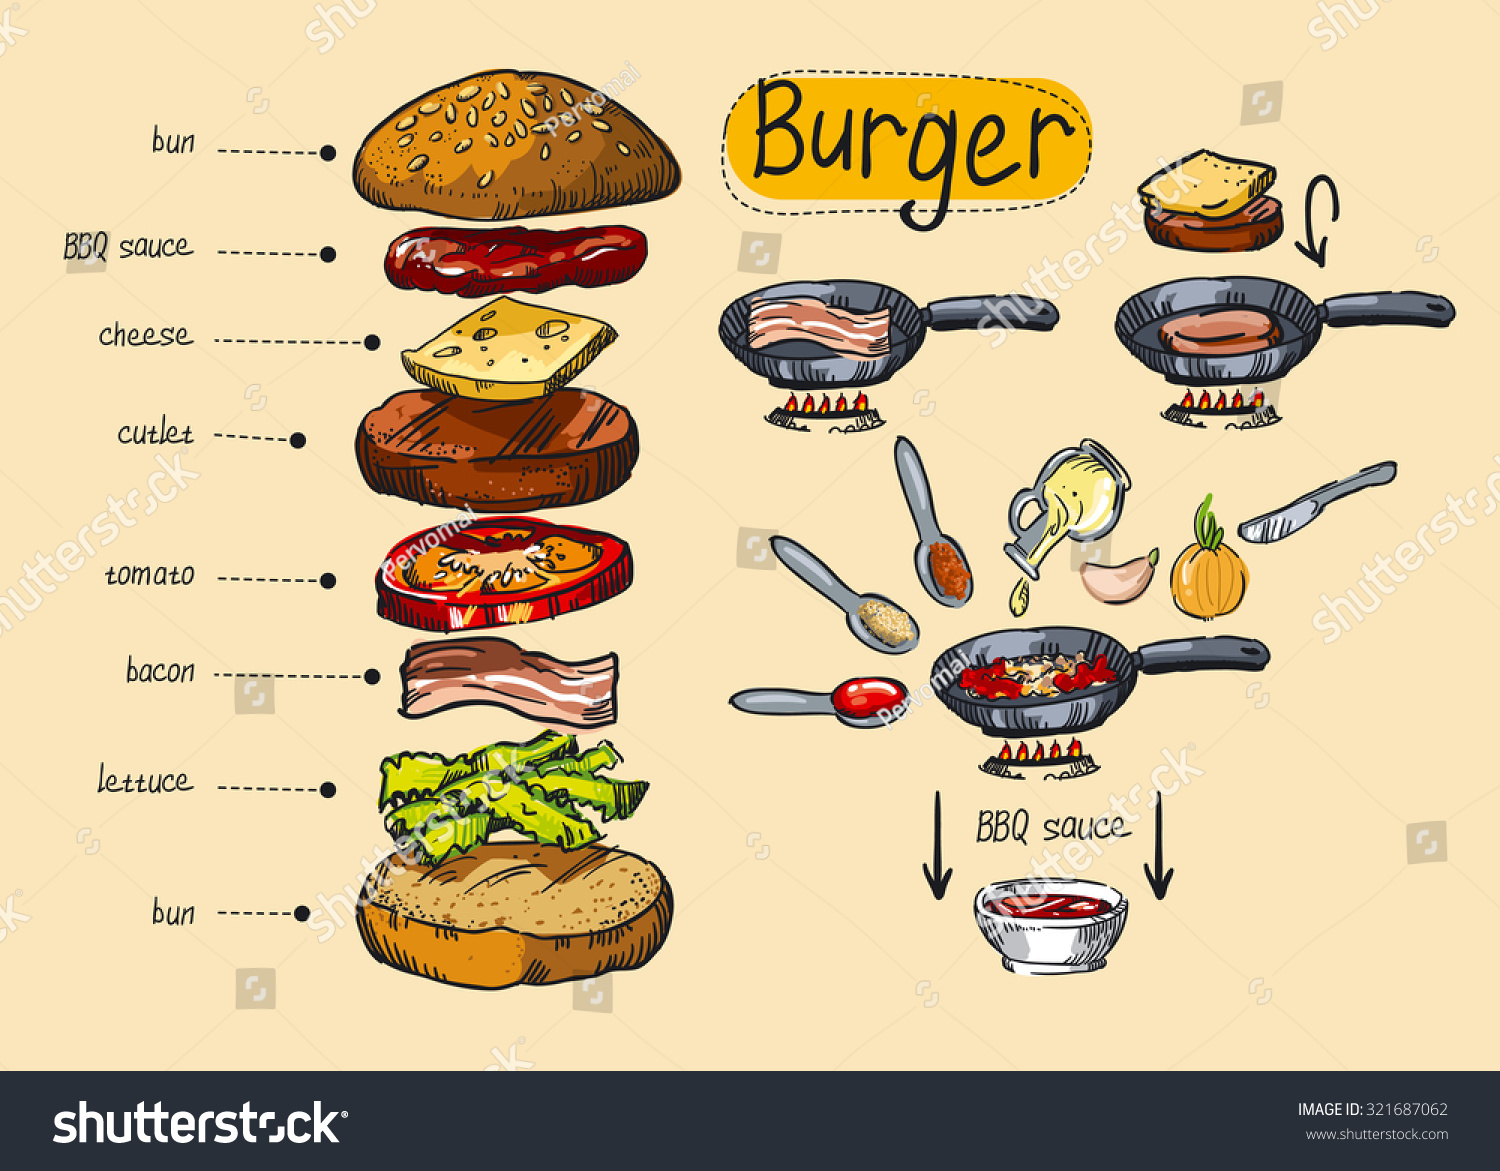 American Burger Cooking Recipe Step By Stock Vector (Royalty